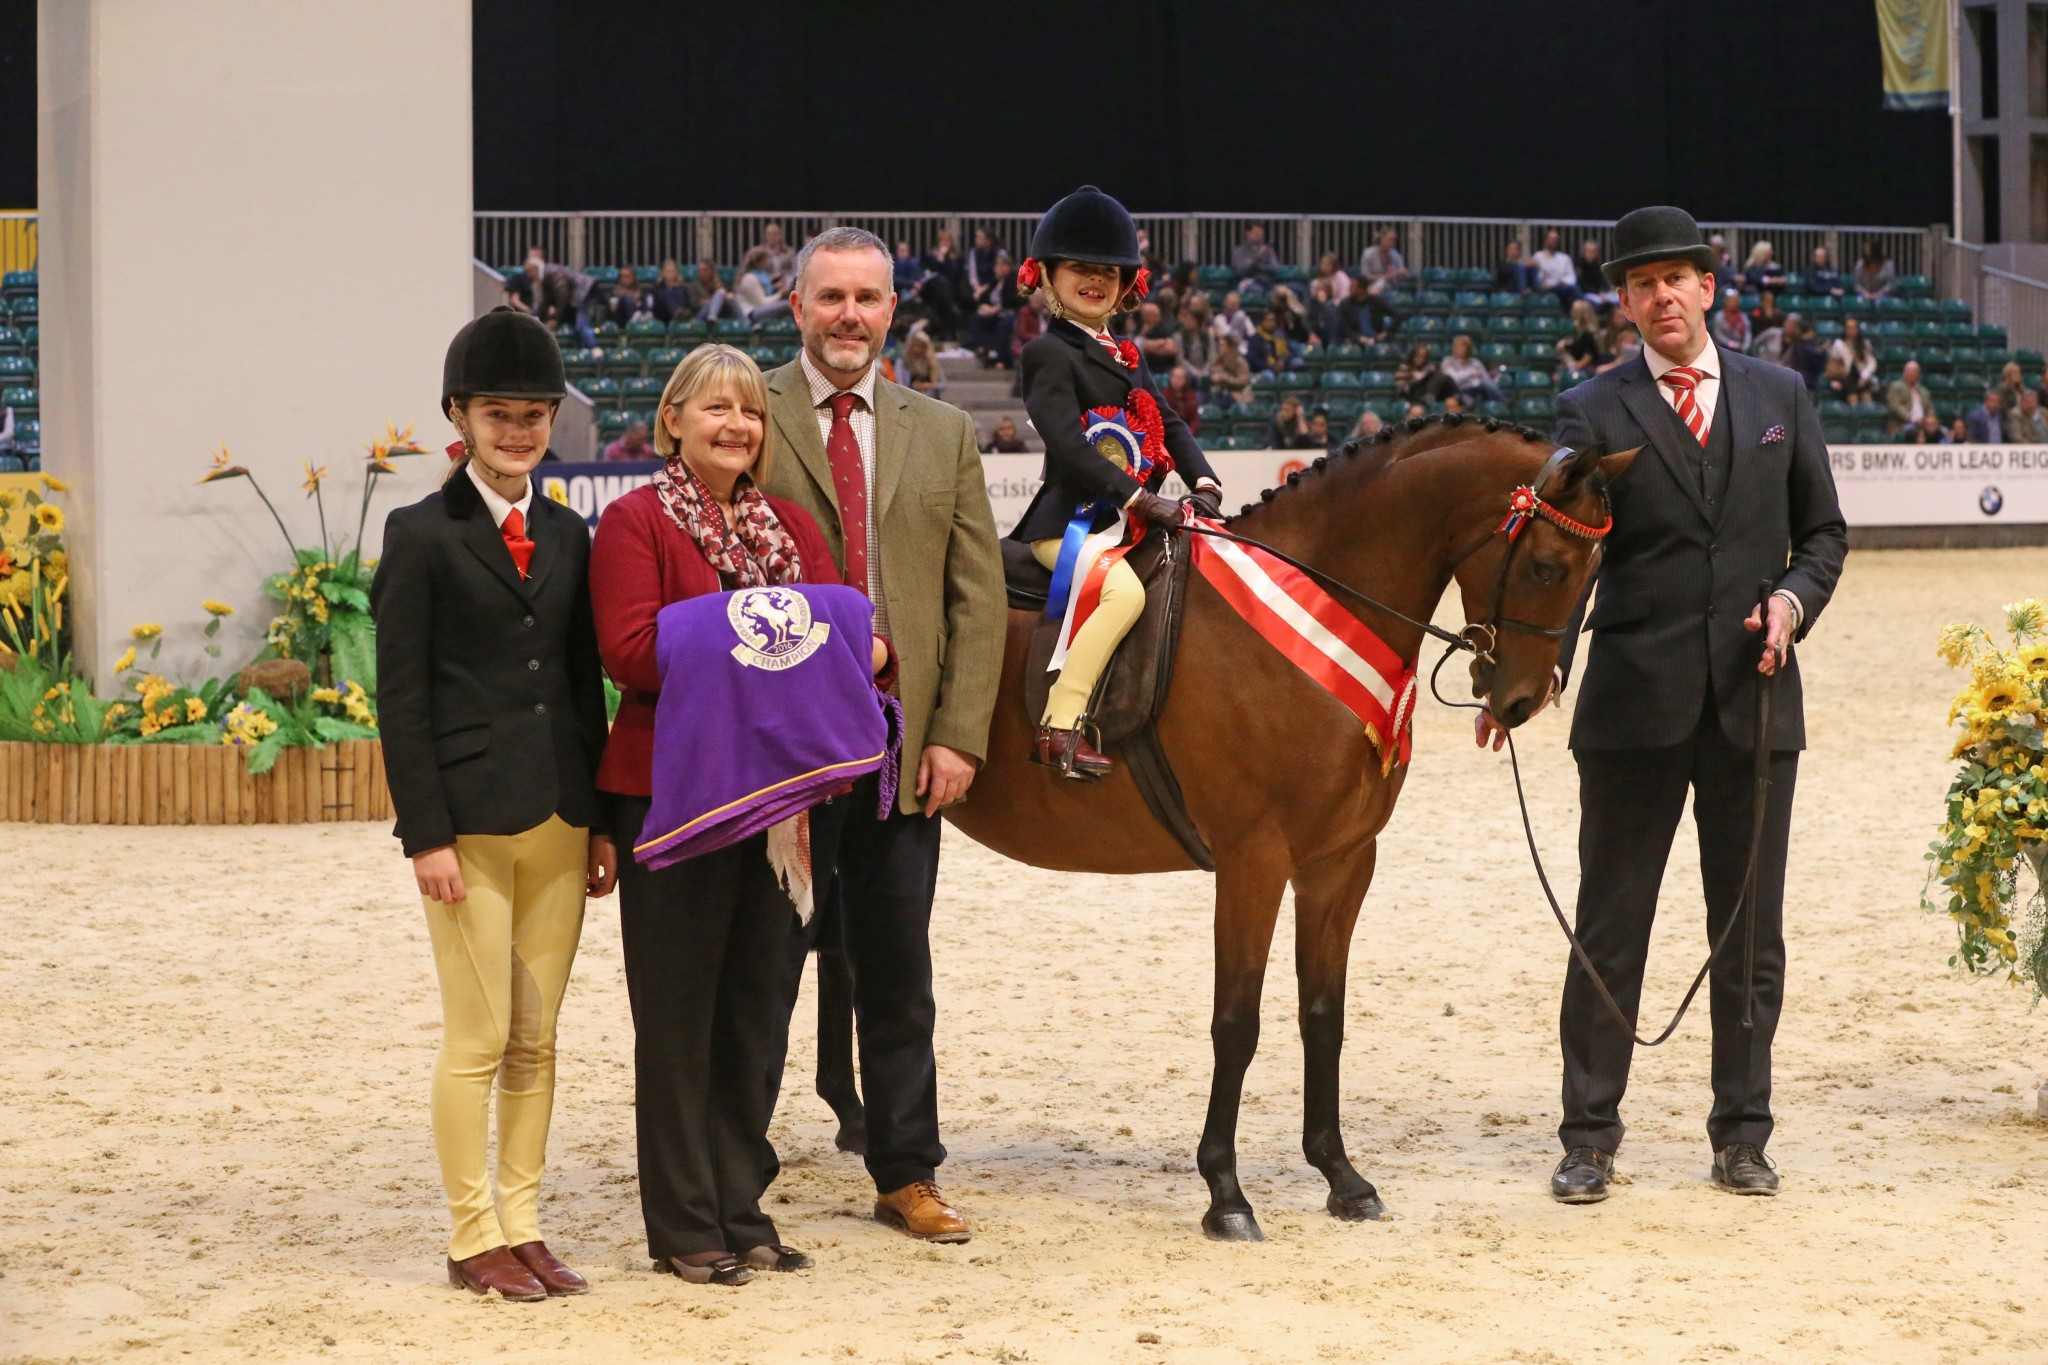 The Price Family Mini Show Pony of the Year 1 - Wytchwood Love Potion is victorious in The Price Family Mini Show Pony of the Year